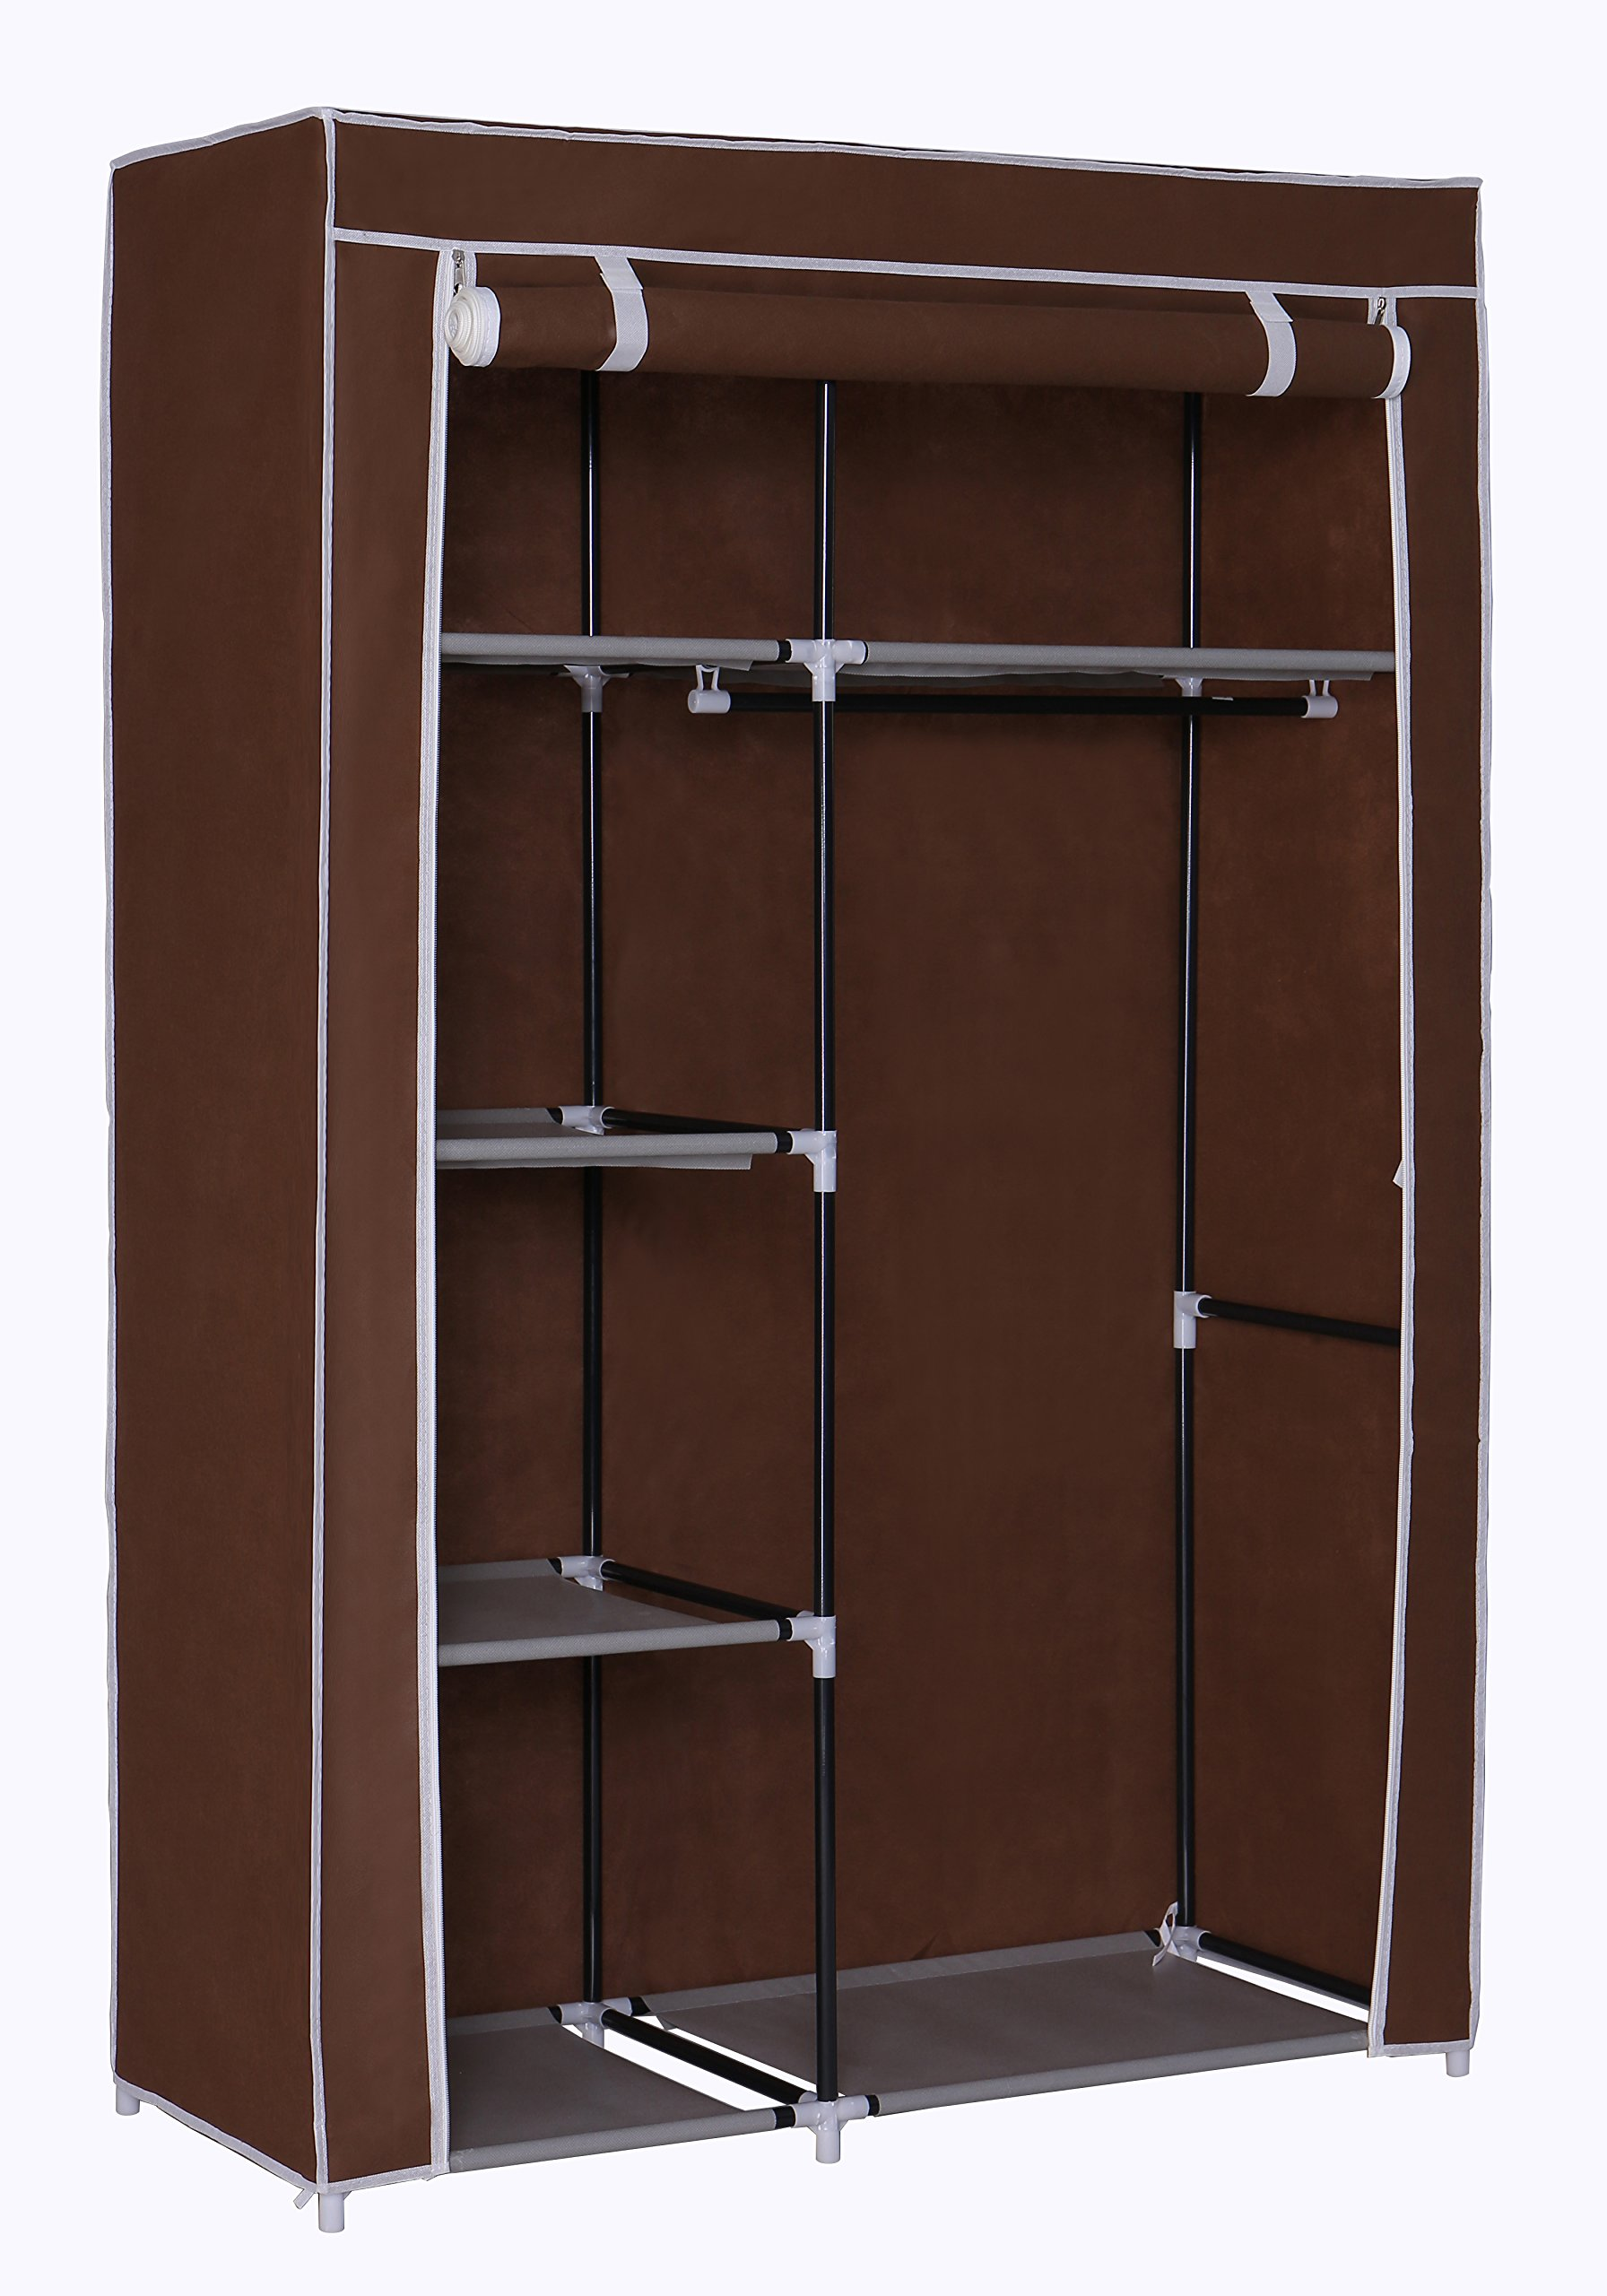 Home-Like Clothes Closet Portable Wardrobe Armoire Cabinet Storage Organizer Portable Closet with Non-Woven Fabric and Hanging Rod Closet Shelves Bedroom Closet (Closet-Brown)